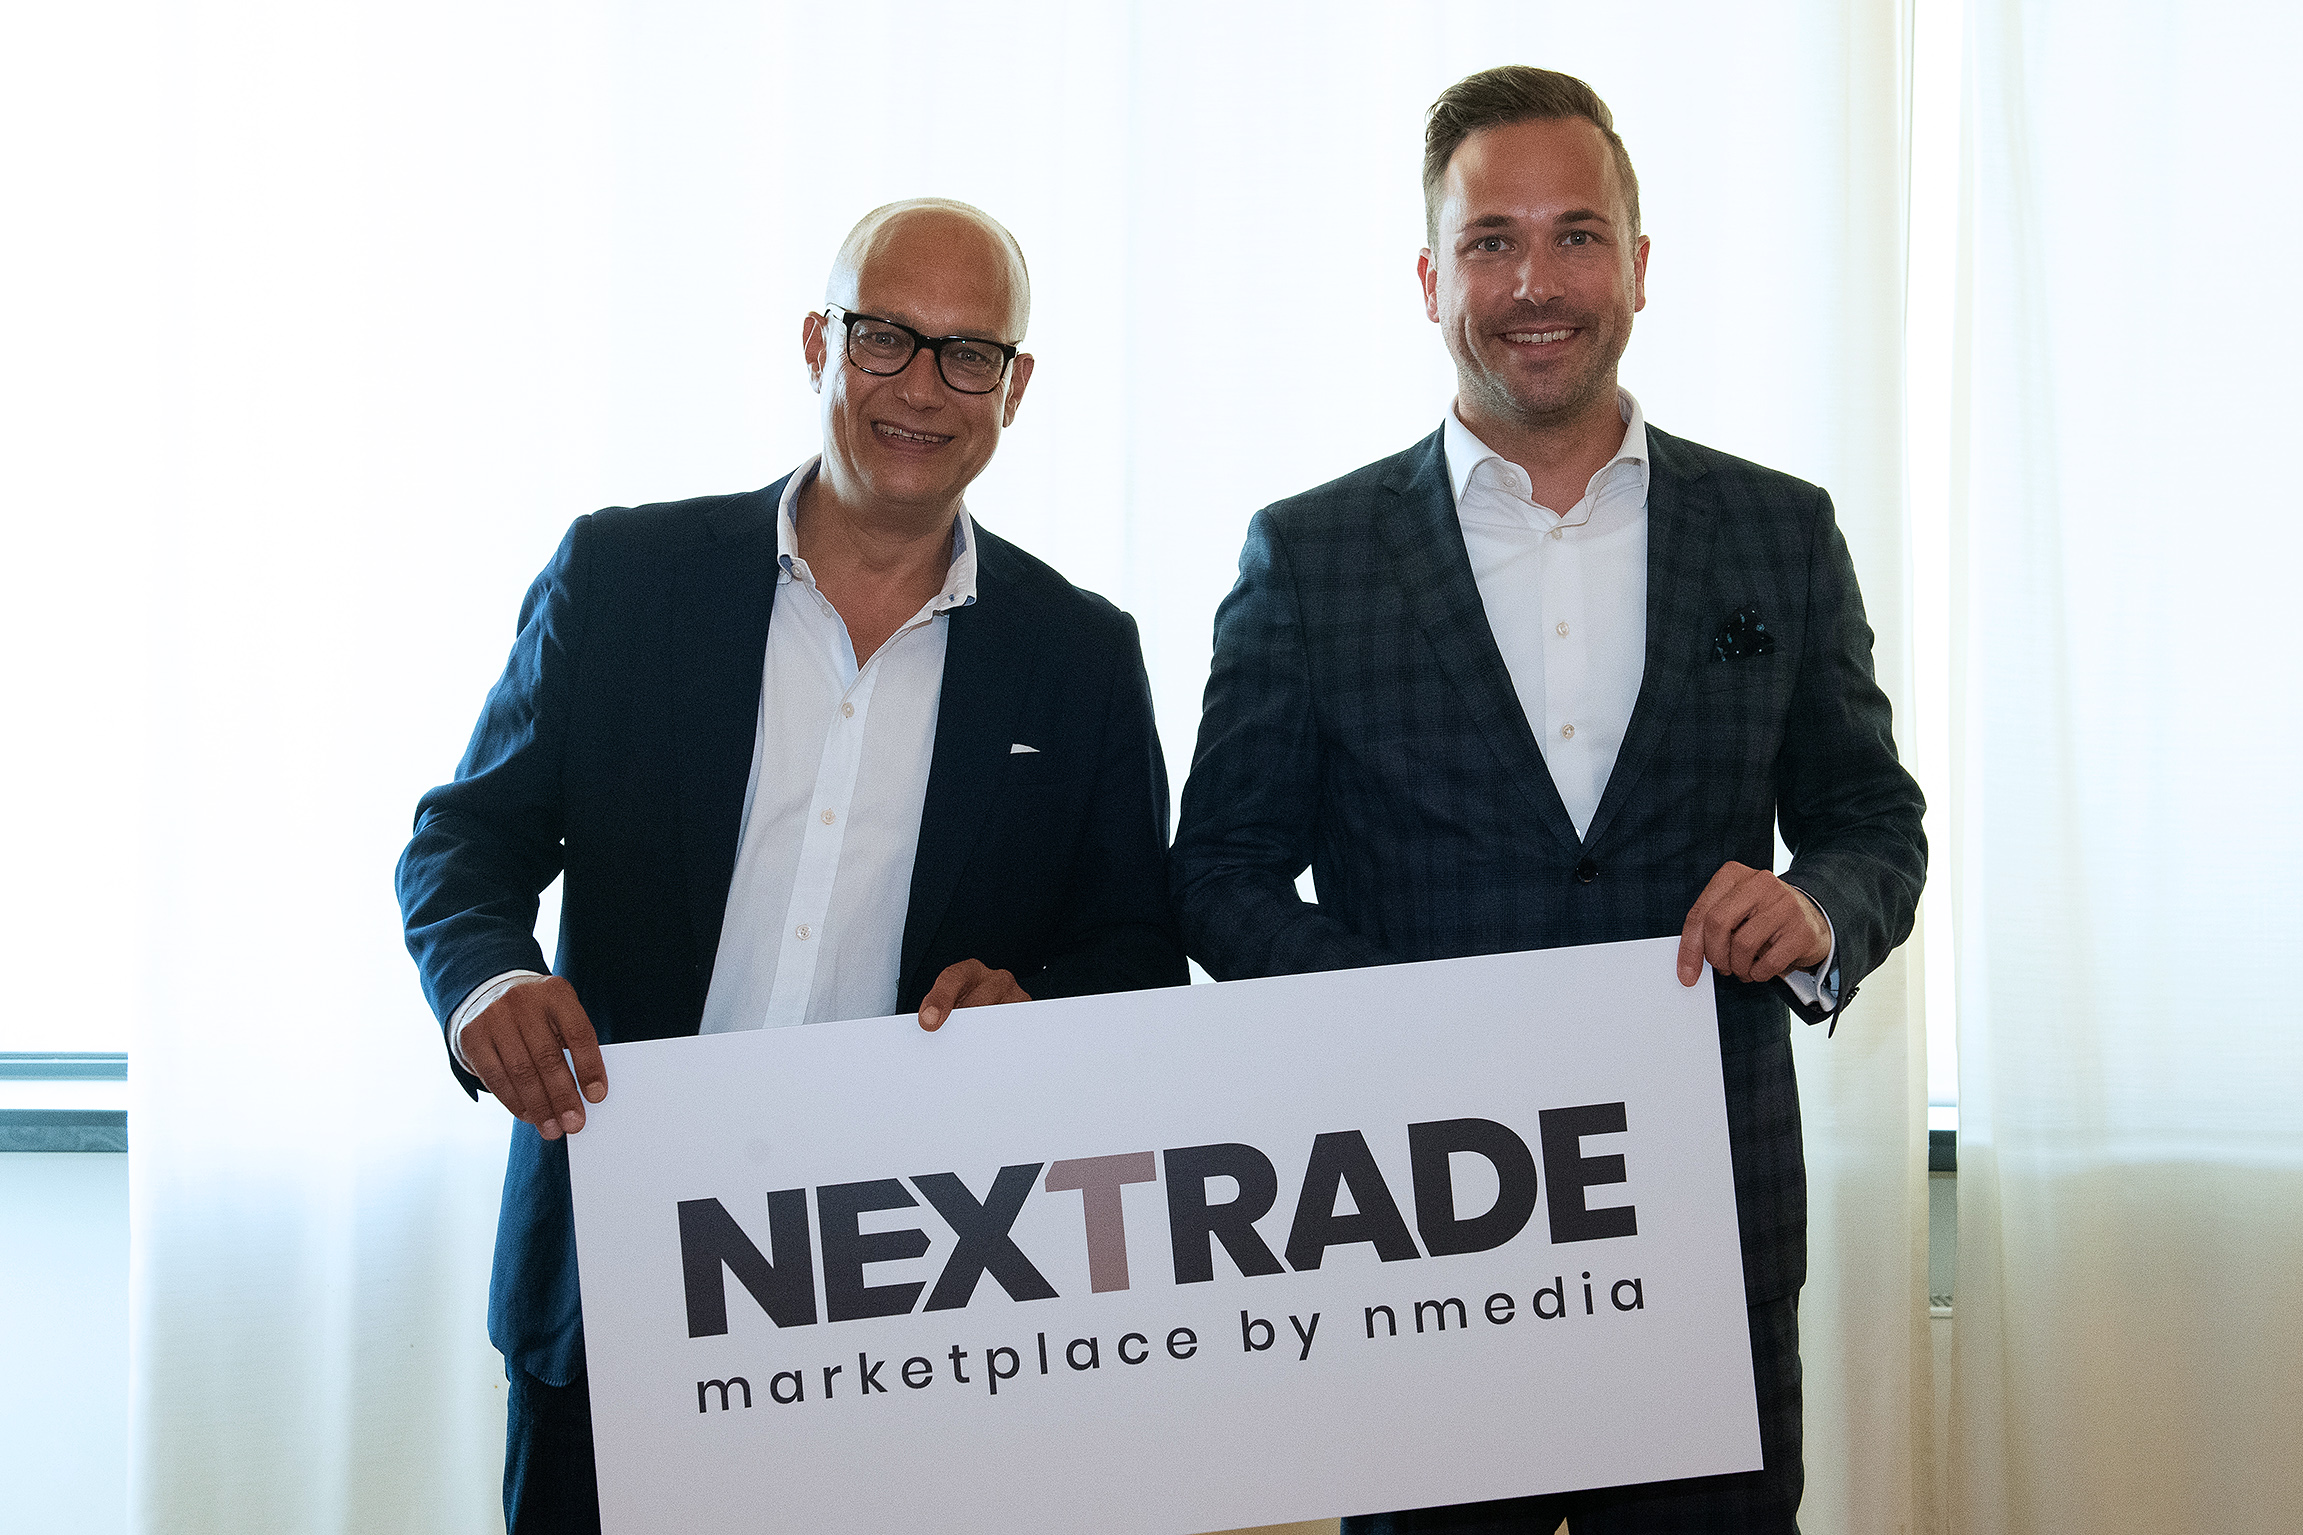 Nicolaus Gedat, CEO nmedia, Philipp Ferger, Group Show Director Messe Frankfurt, CEO nmedia